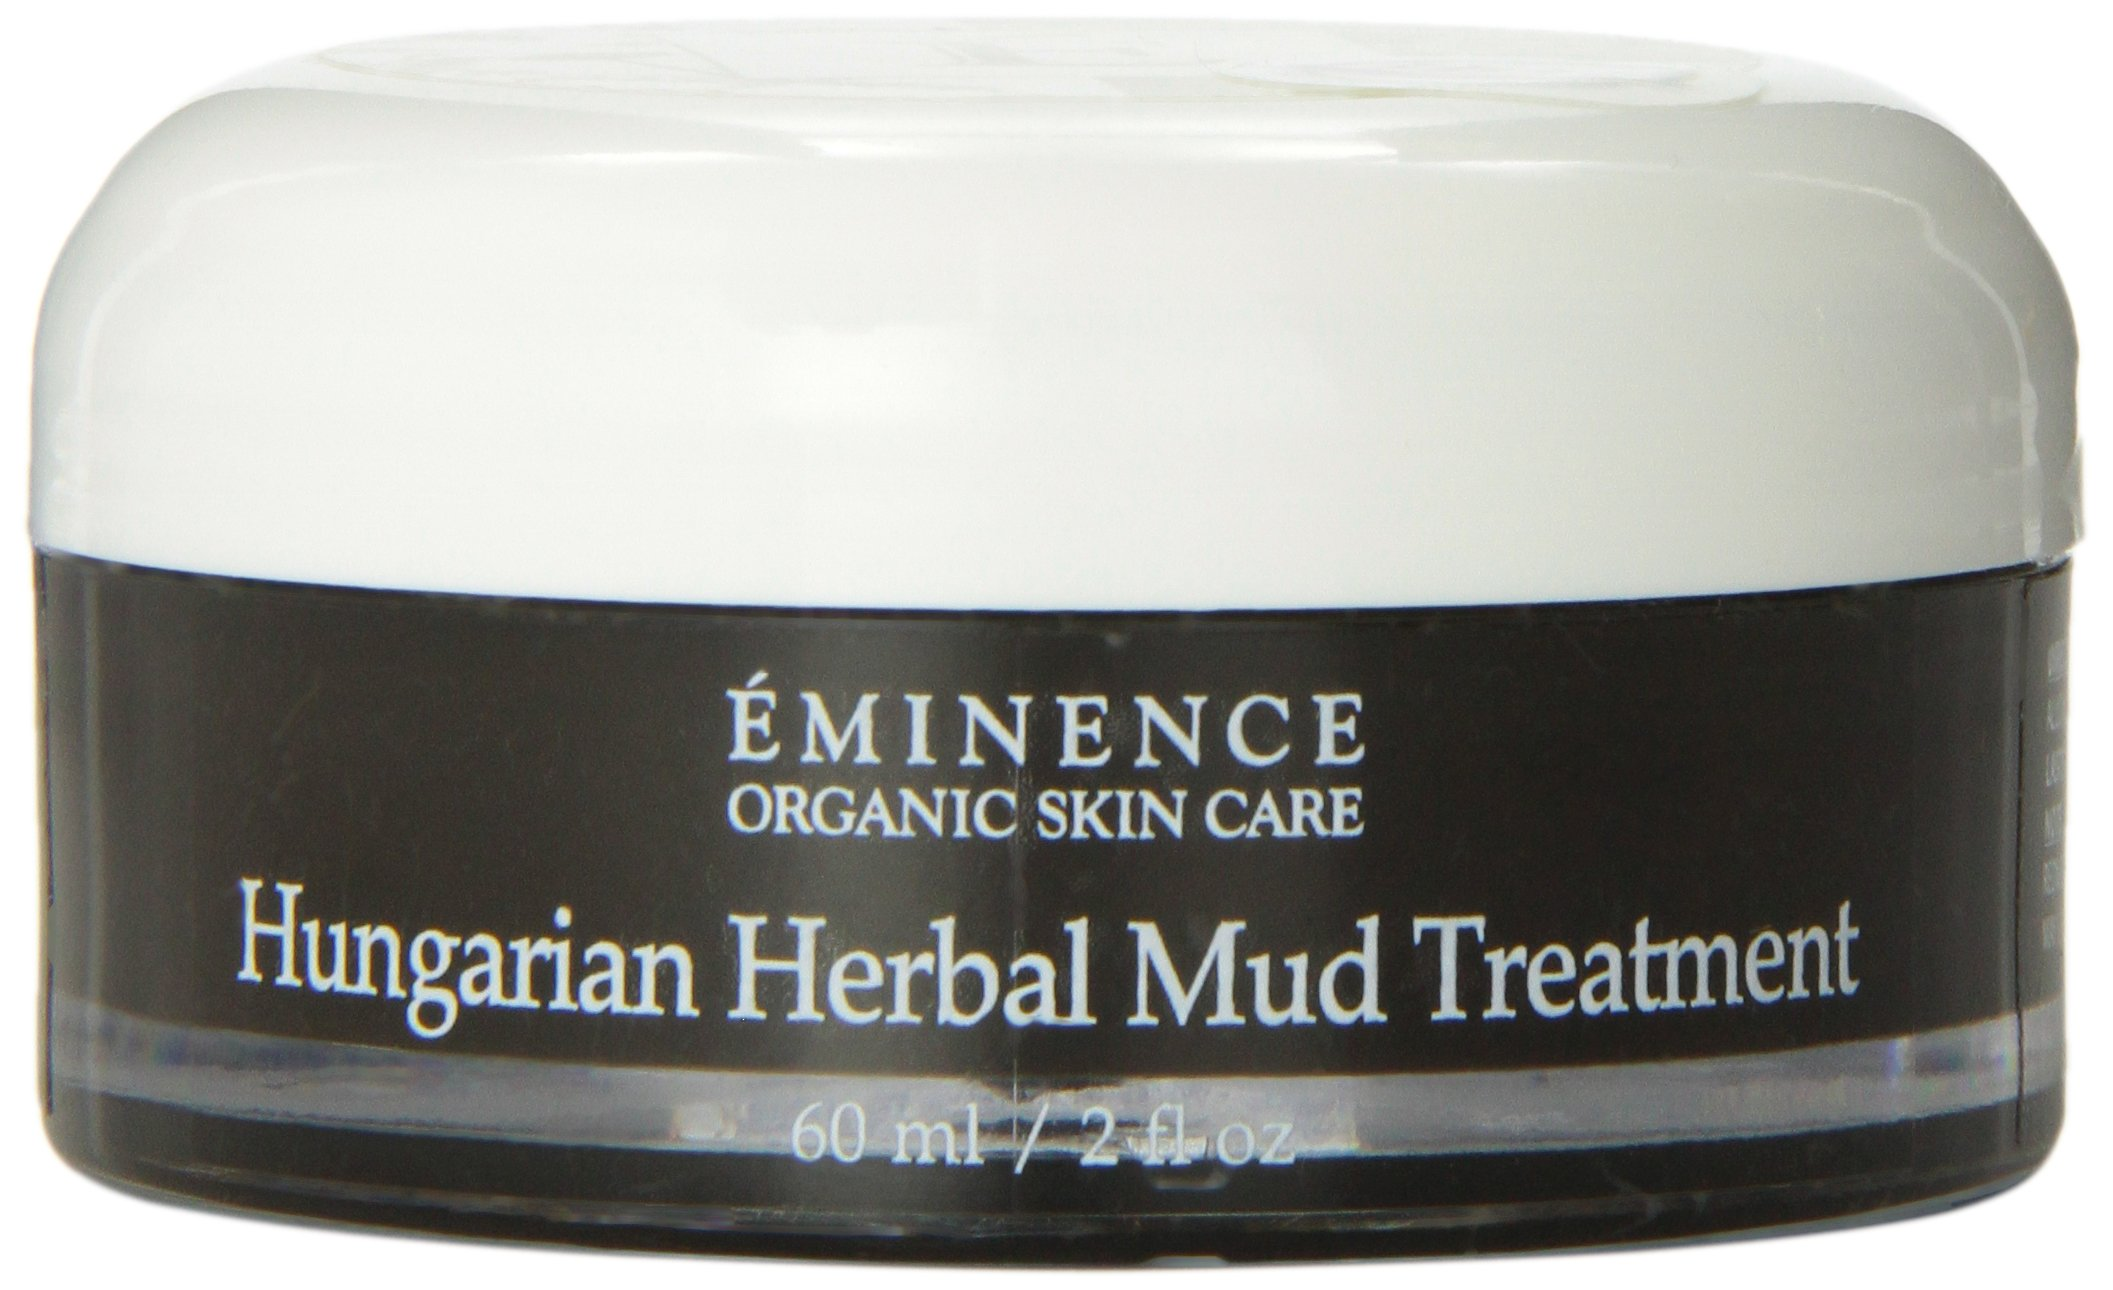 Eminence Hungarian Herbal Mud Treatment, 2 Ounce by Eminence